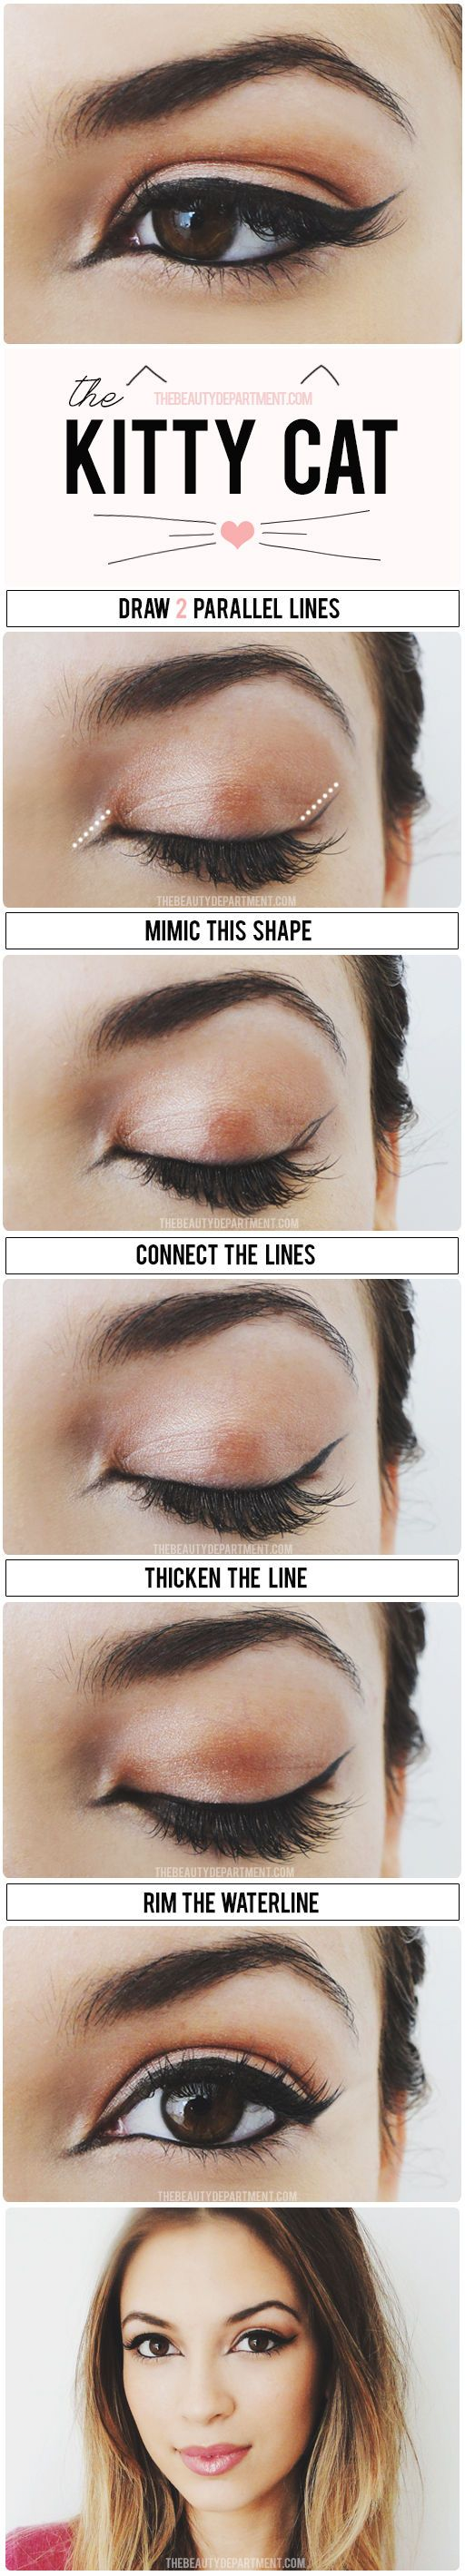 15 Eyeliner Tutorials You Cant Live Without  Heart Over Heels